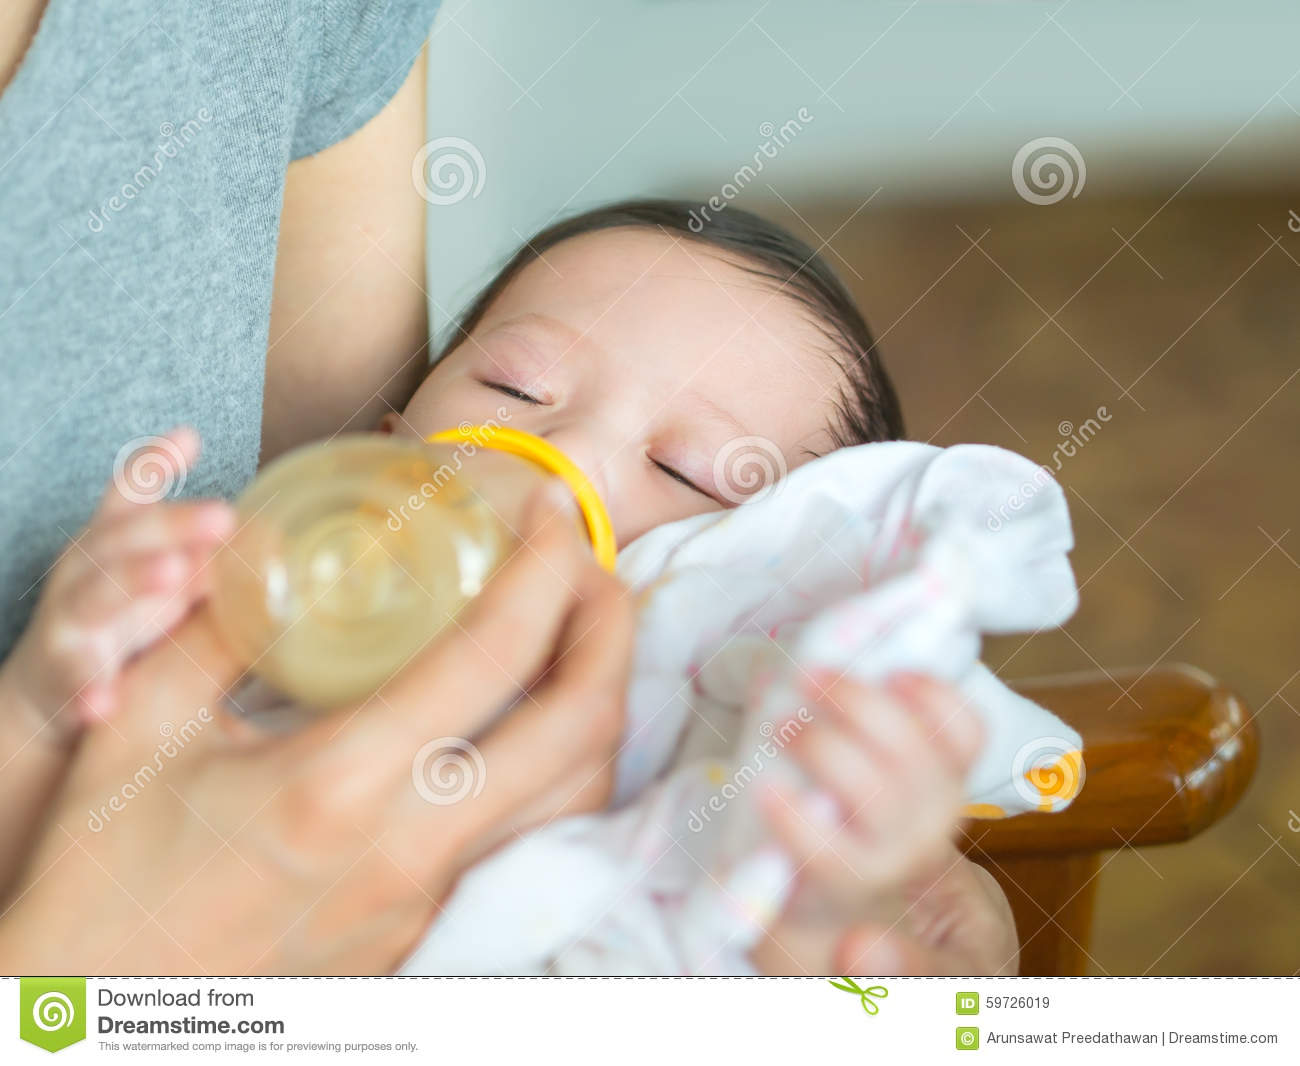 Baby Drinking Milk Only While Sleeping